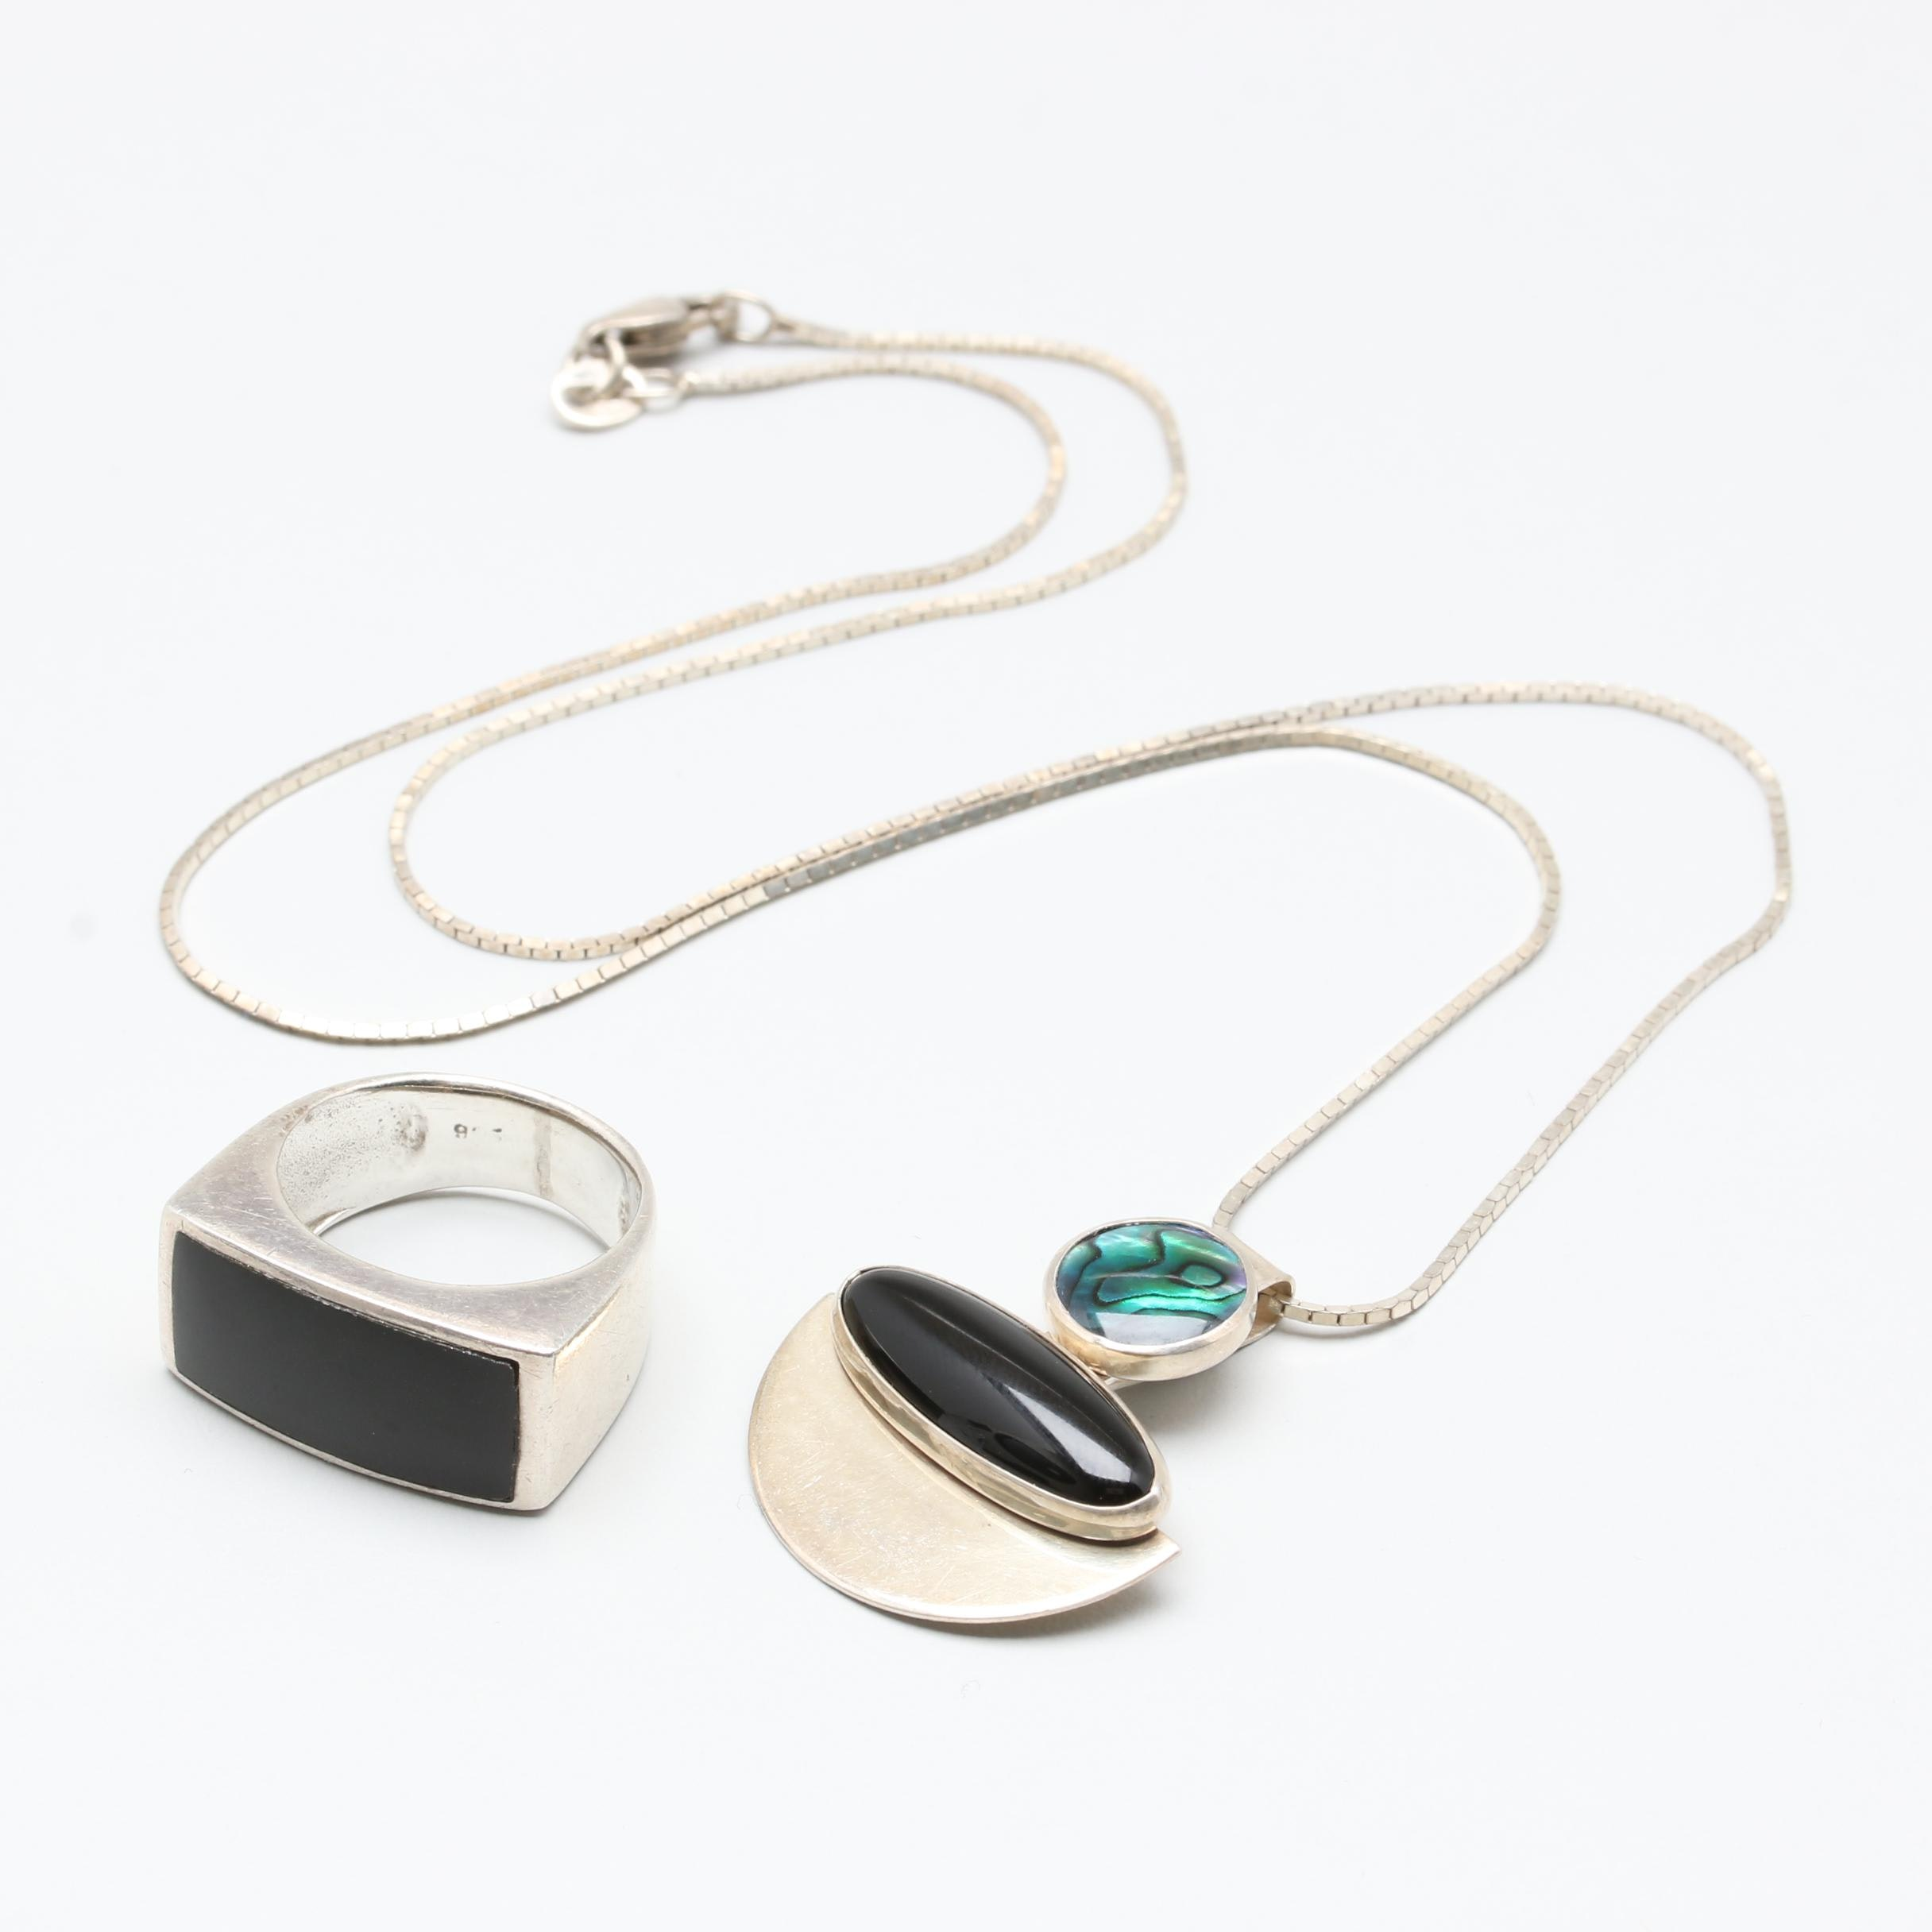 Sterling Silver Necklace and Ring Including Abalone and Black Onyx